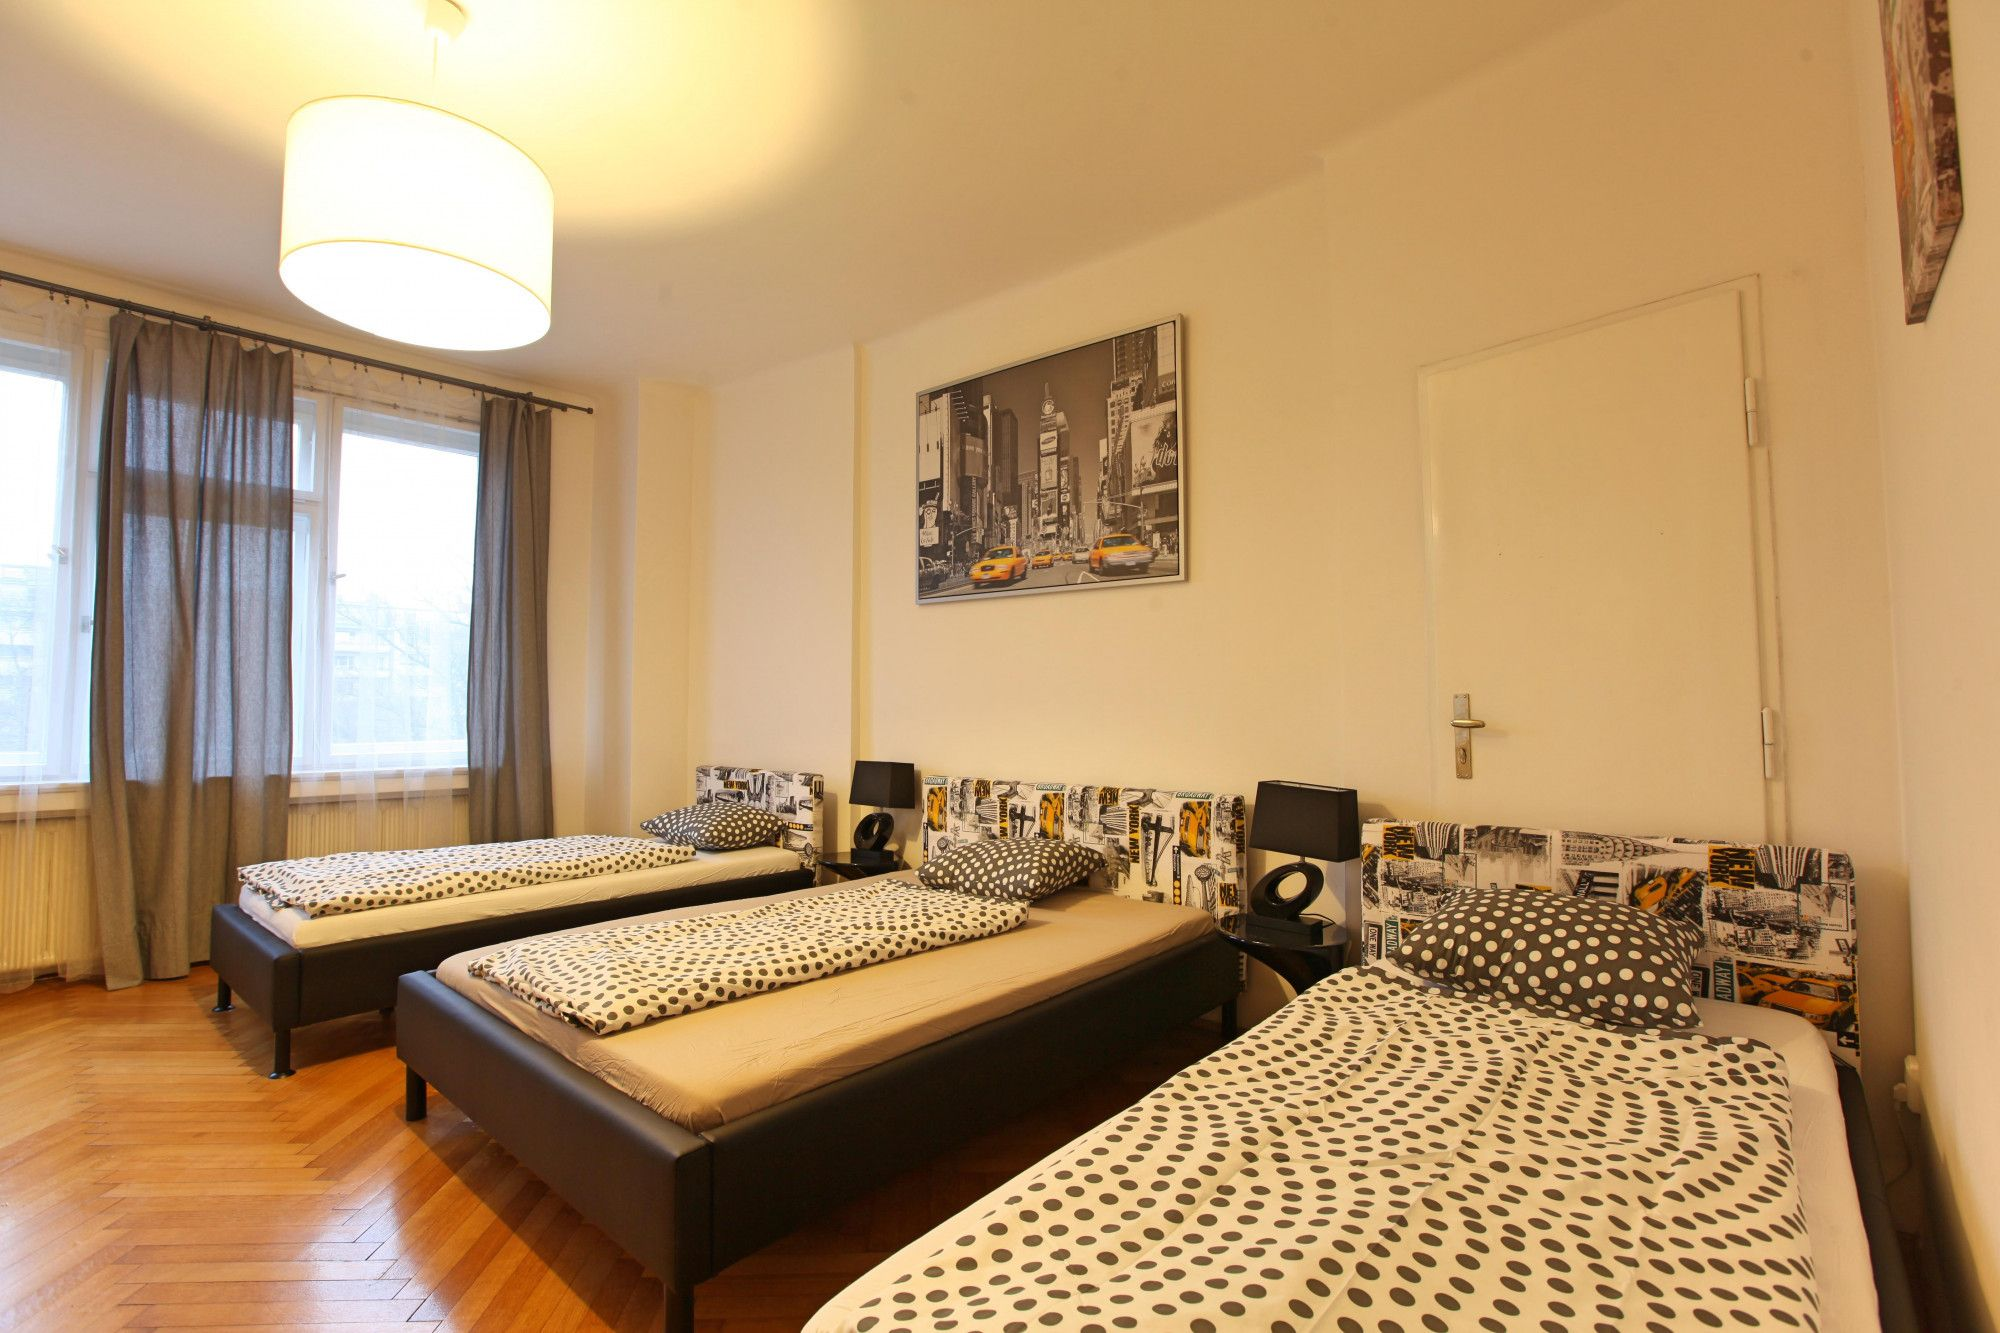 How to make a bedroom with an area of 12-14 square meters. do it yourself in modern style